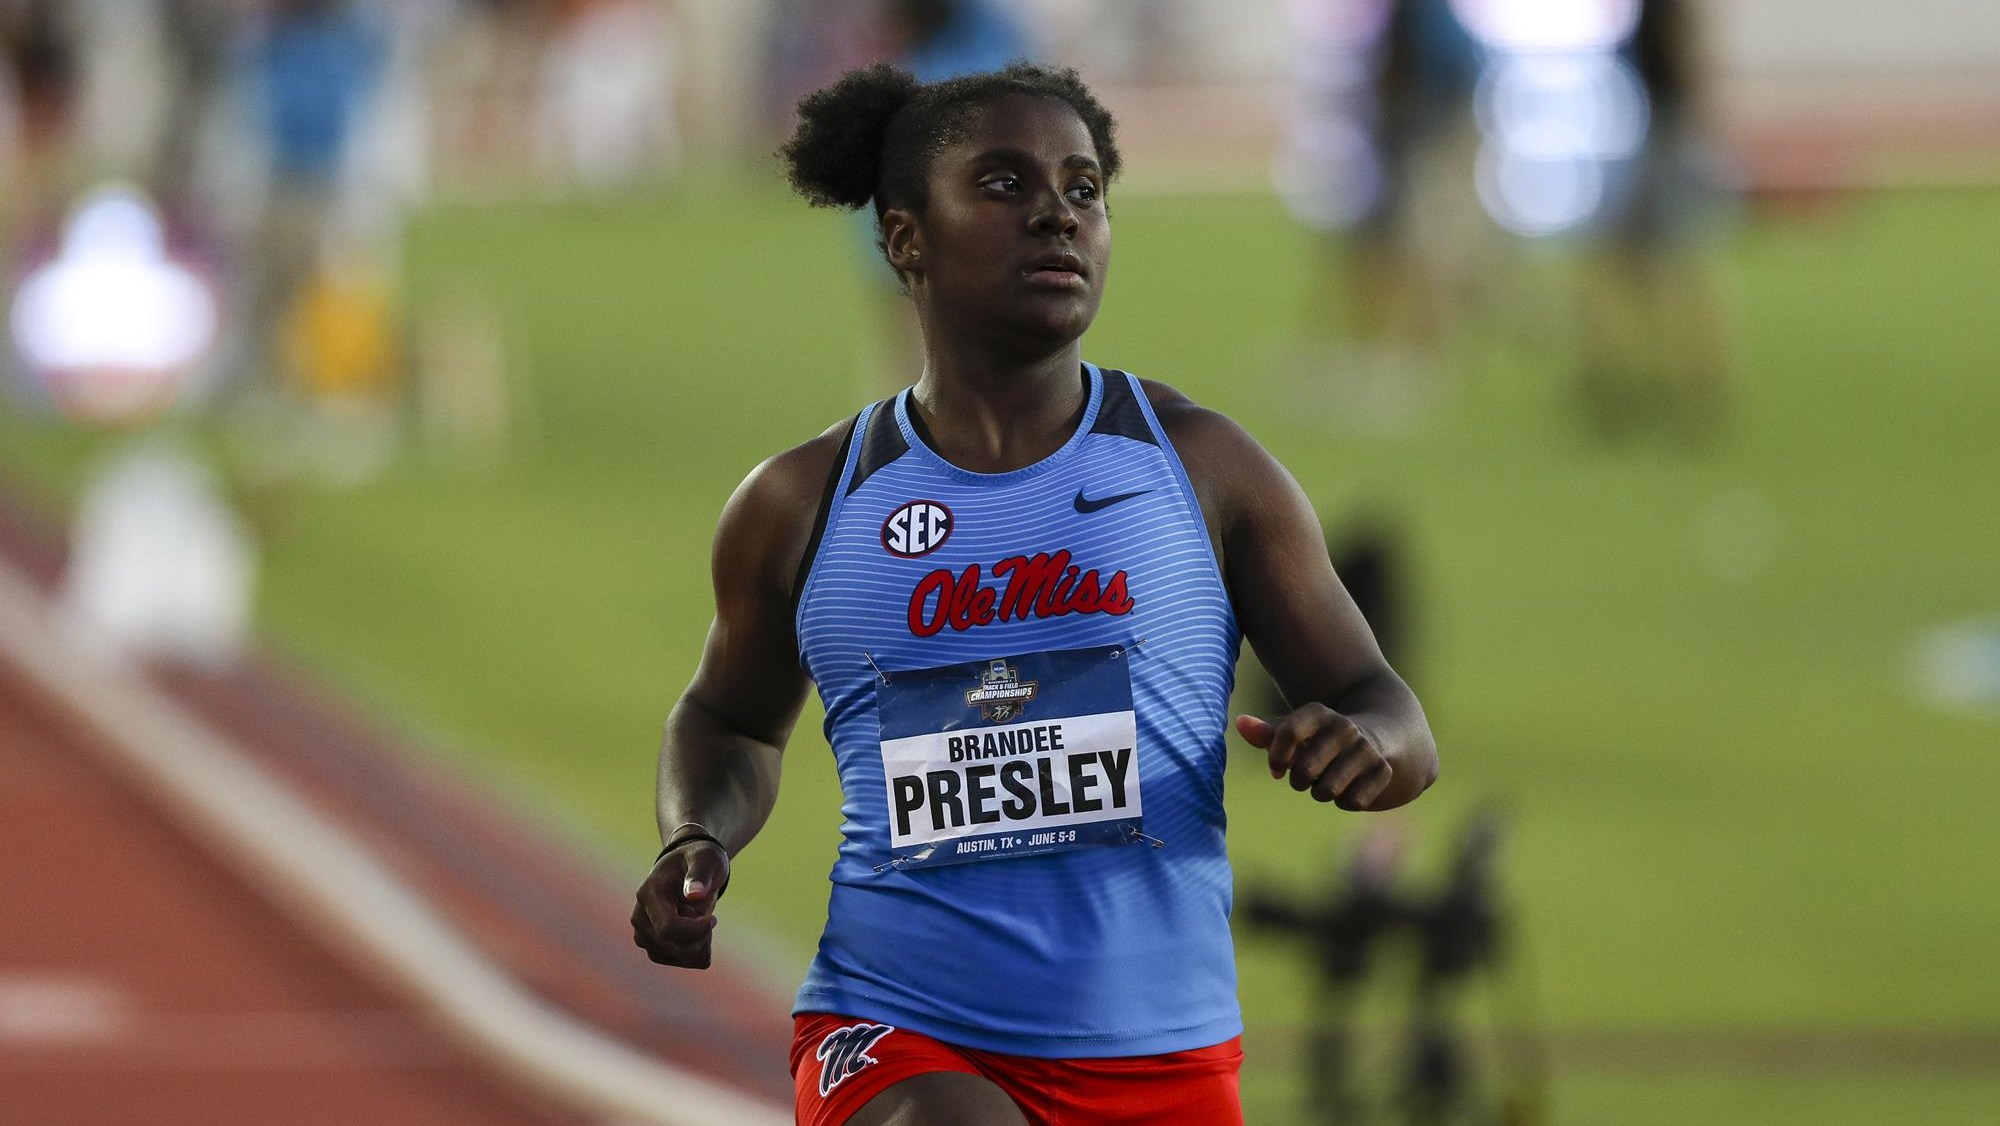 Freshmen Lead Way at Fast and Fierce Day Two of NCAA Outdoor Championships - Ole Miss Athletics